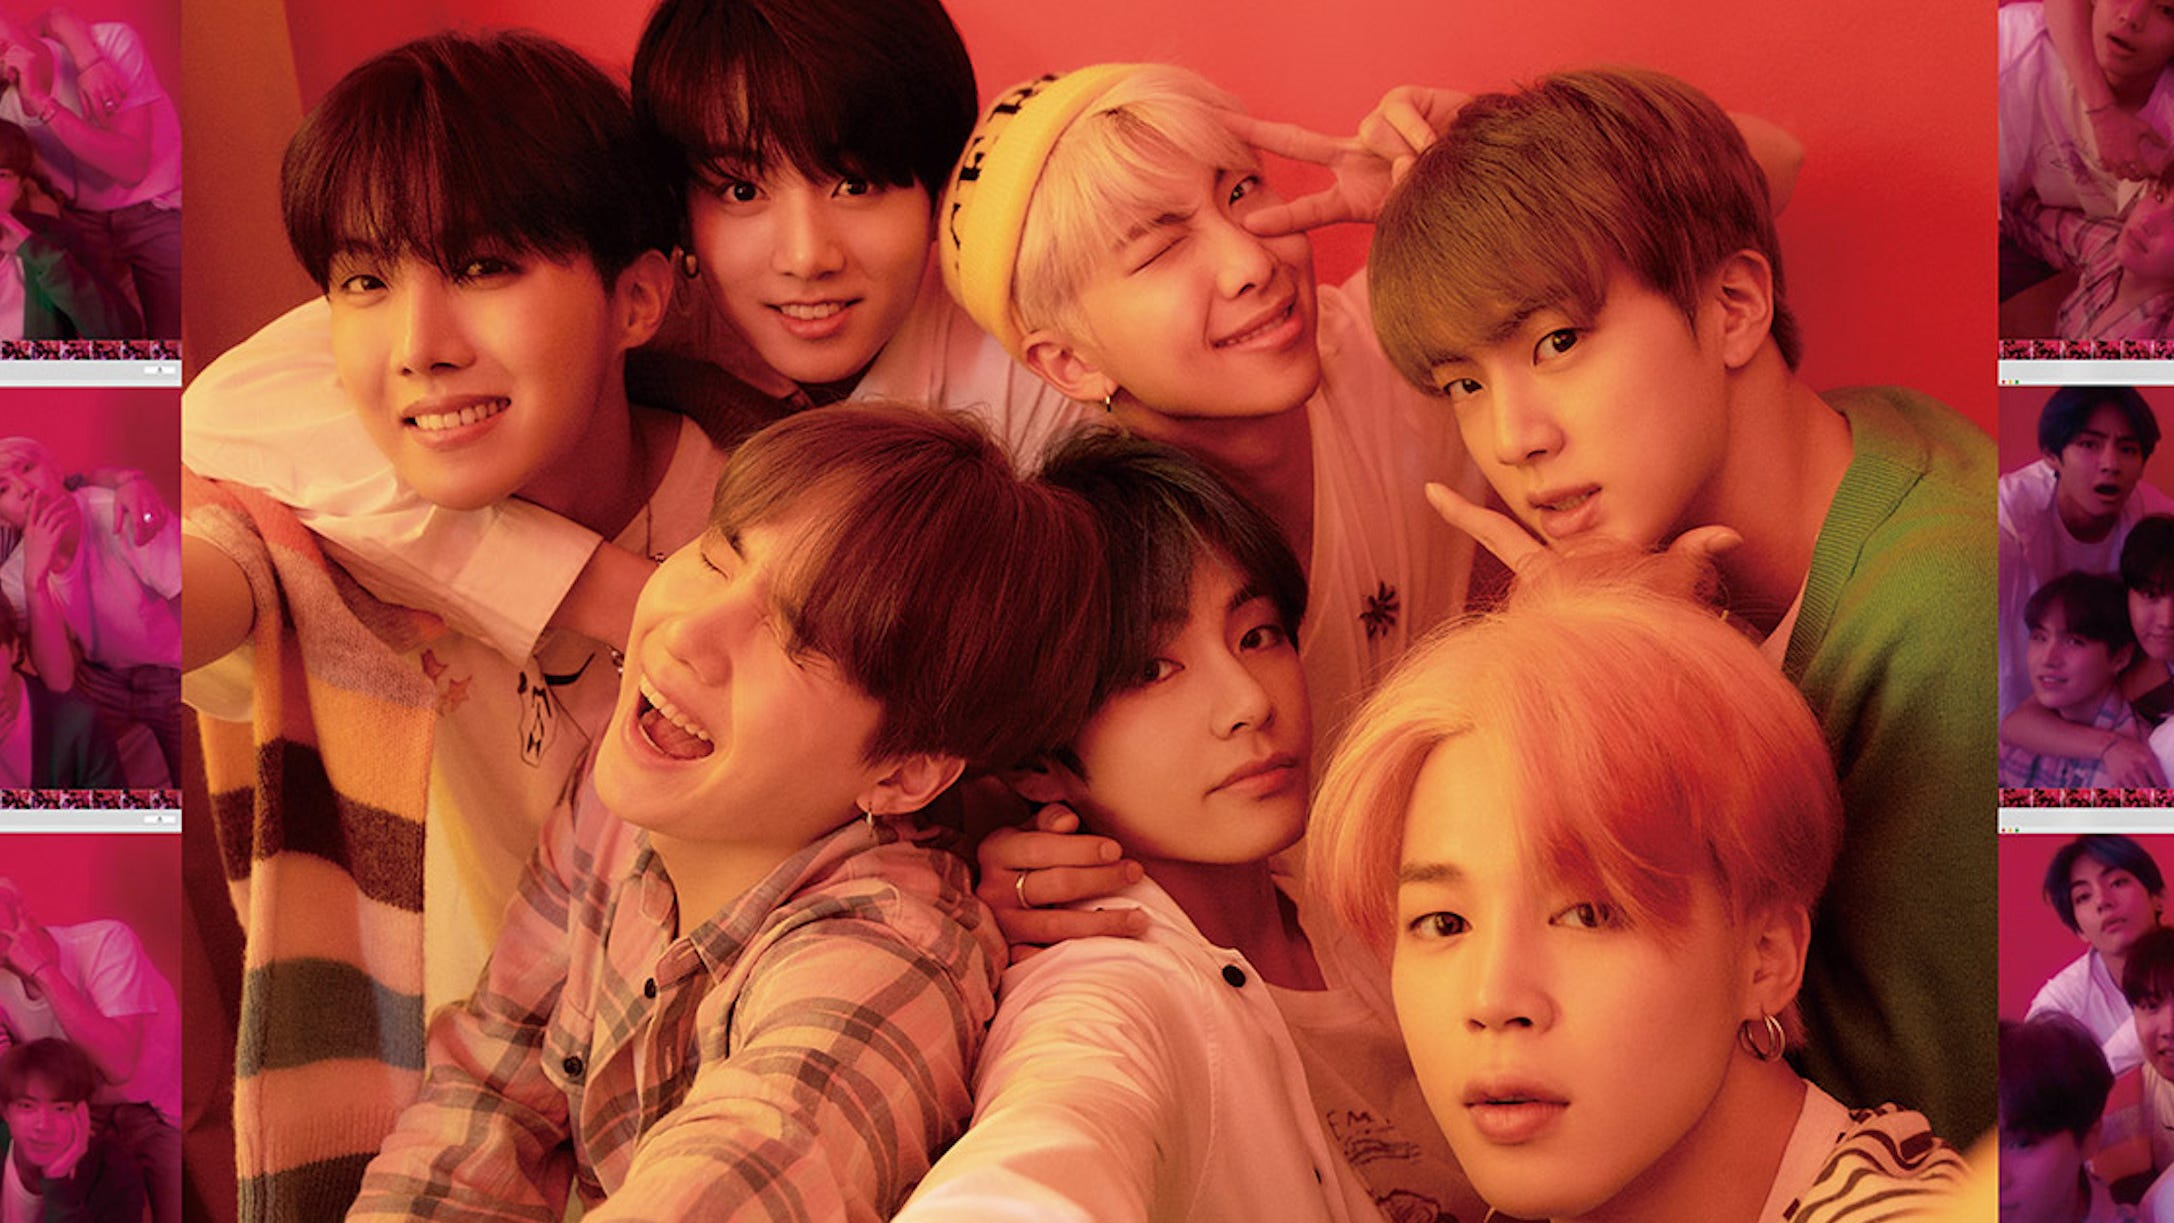 BTS & Halsey Are Visions In Pink For Joyful